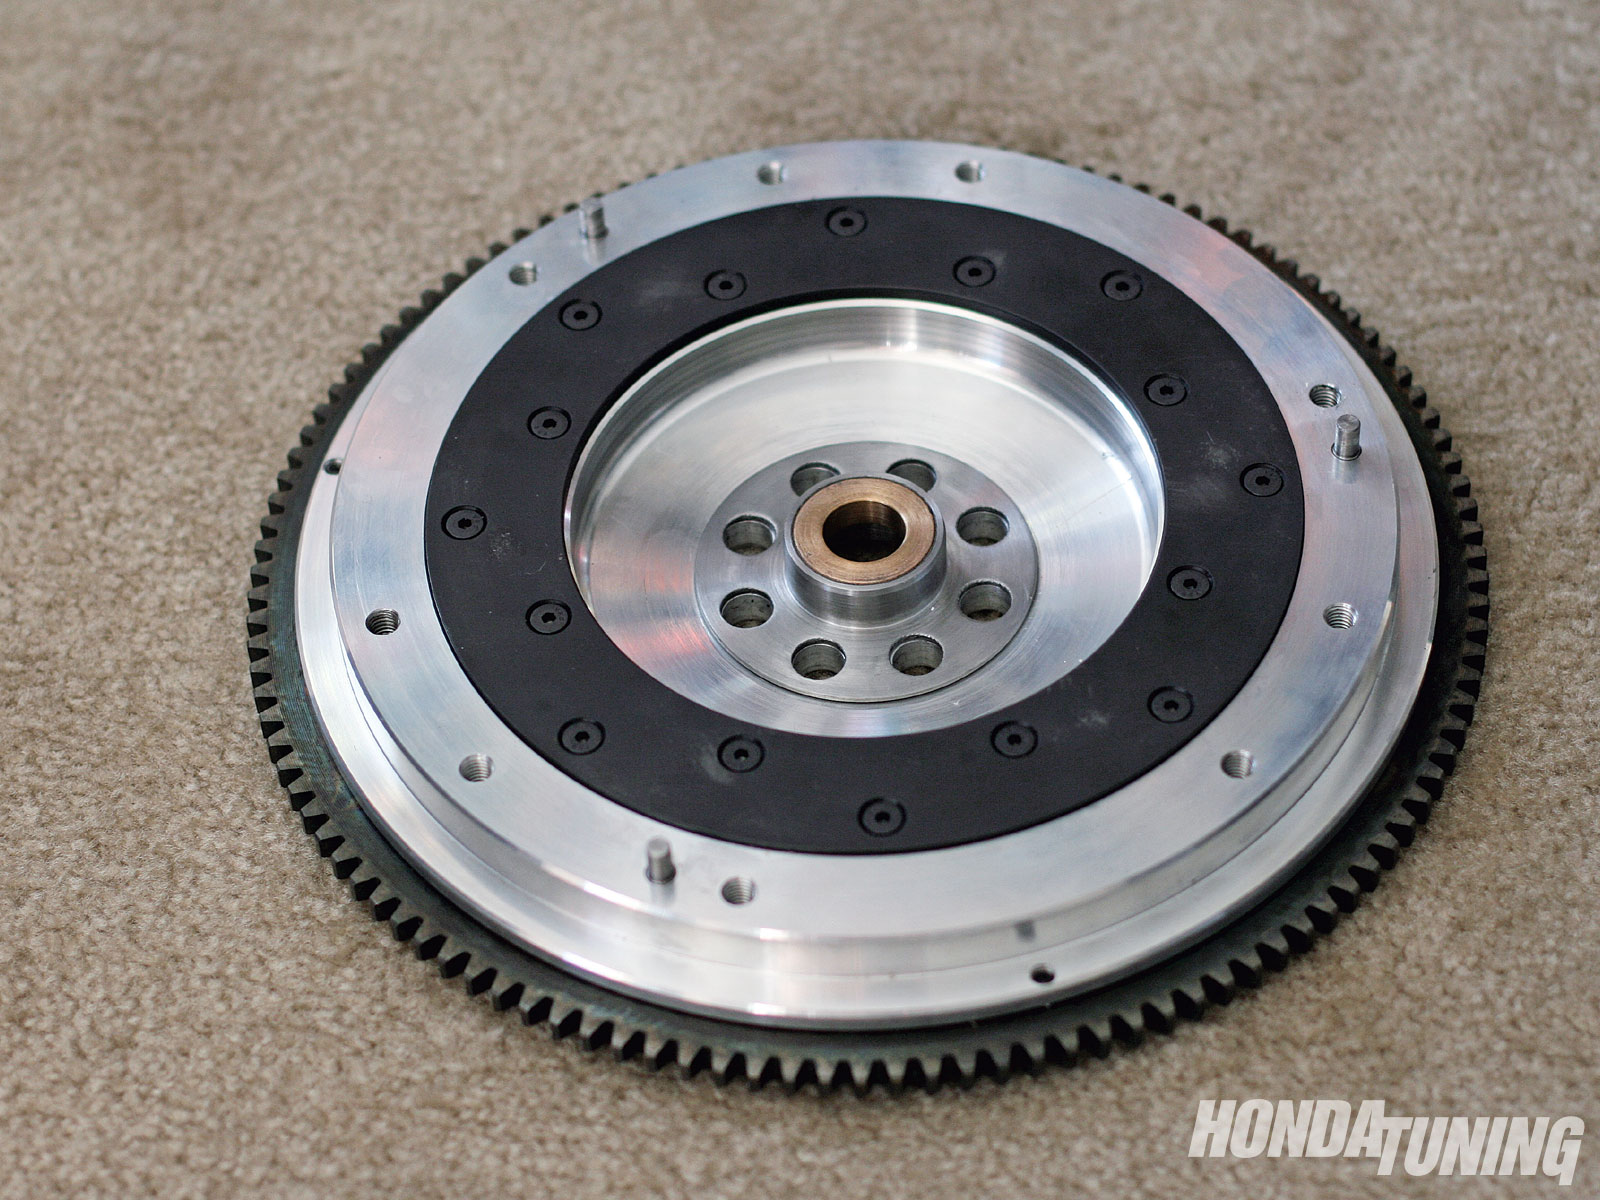 motor mount htup 1010 06 o k24 swap into s2000 chassis clutch masters flywheel [ 1600 x 1200 Pixel ]